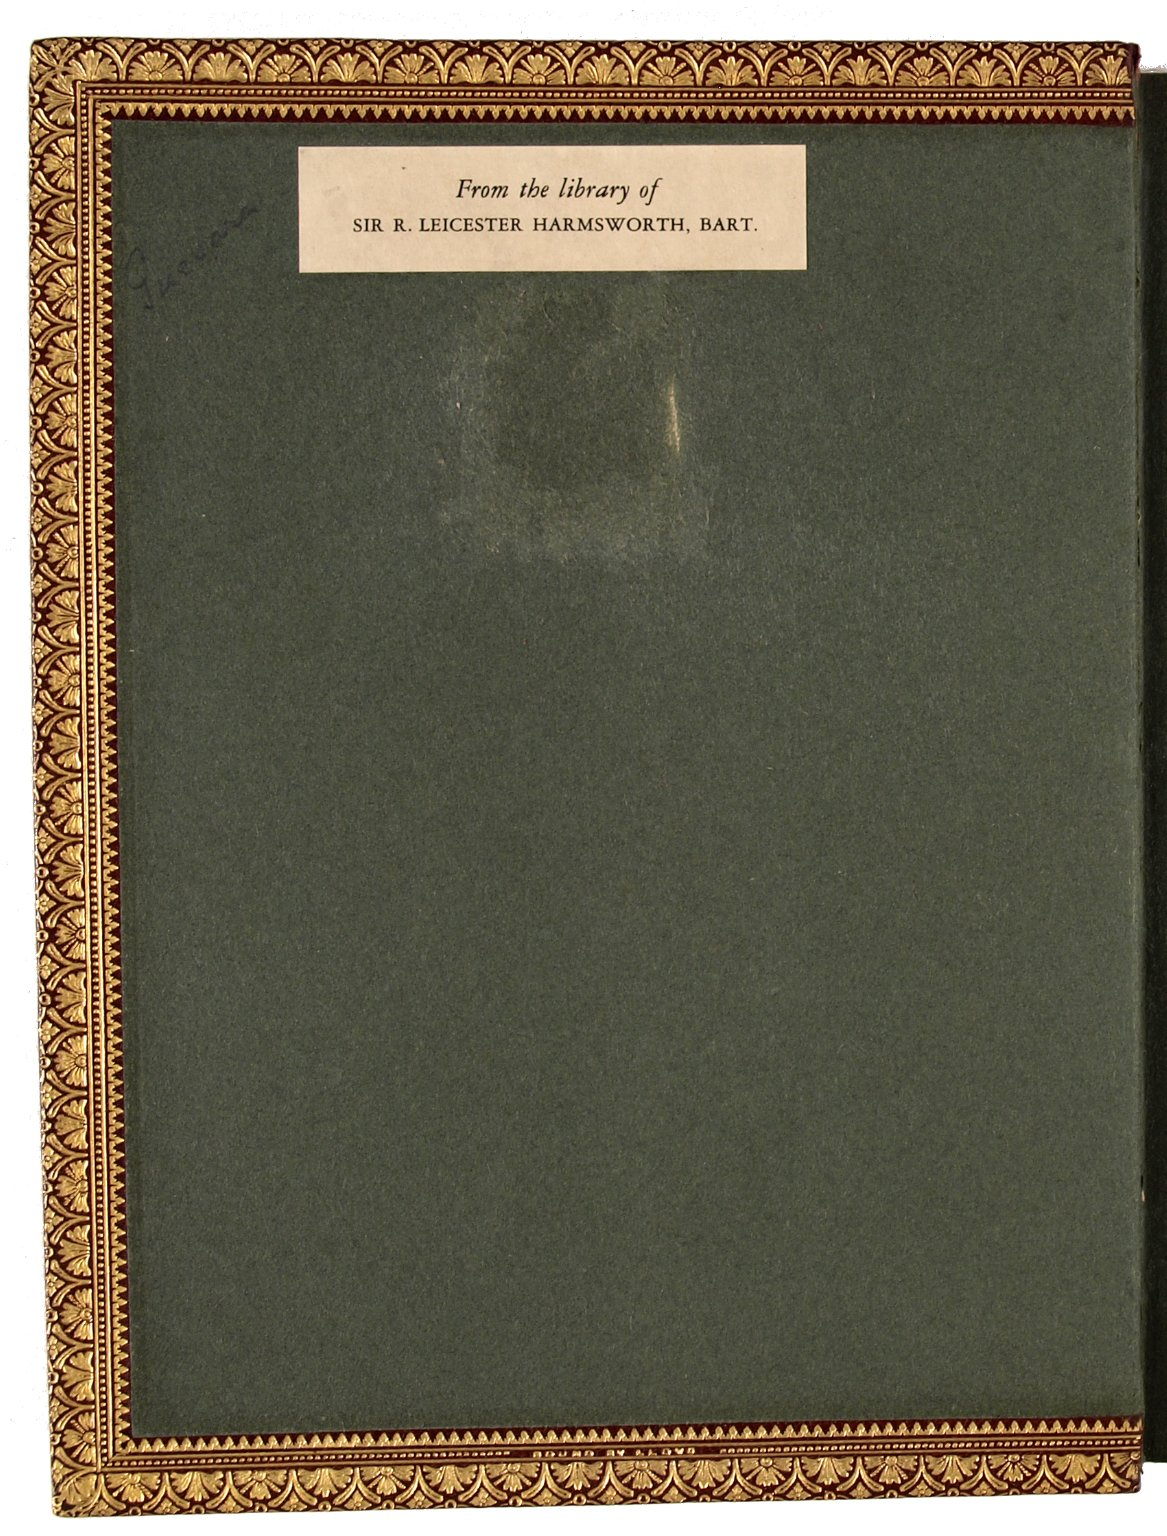 Inside front cover, STC 10794 copy 1.